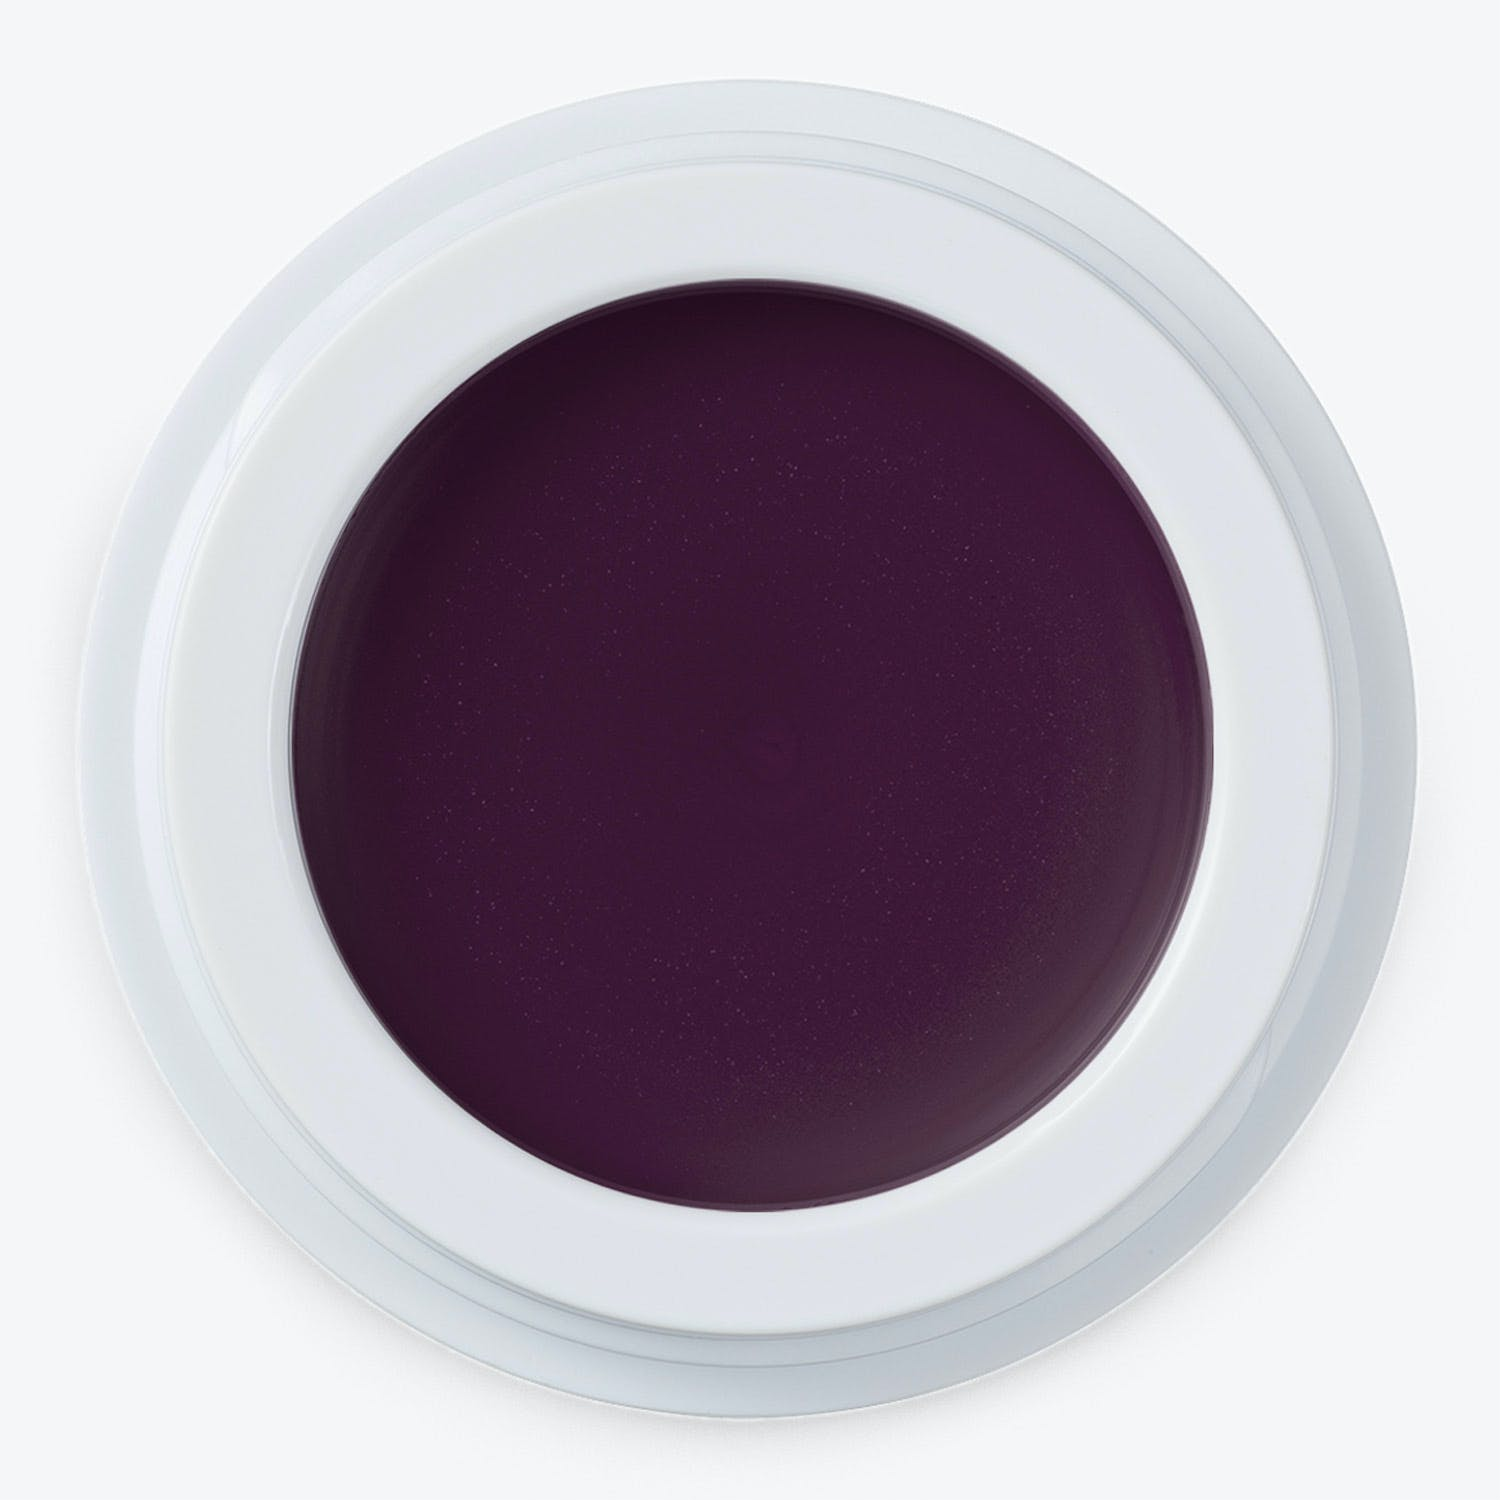 Product Image - Manasi 7 All Over Color Mangosteen/Aubergine